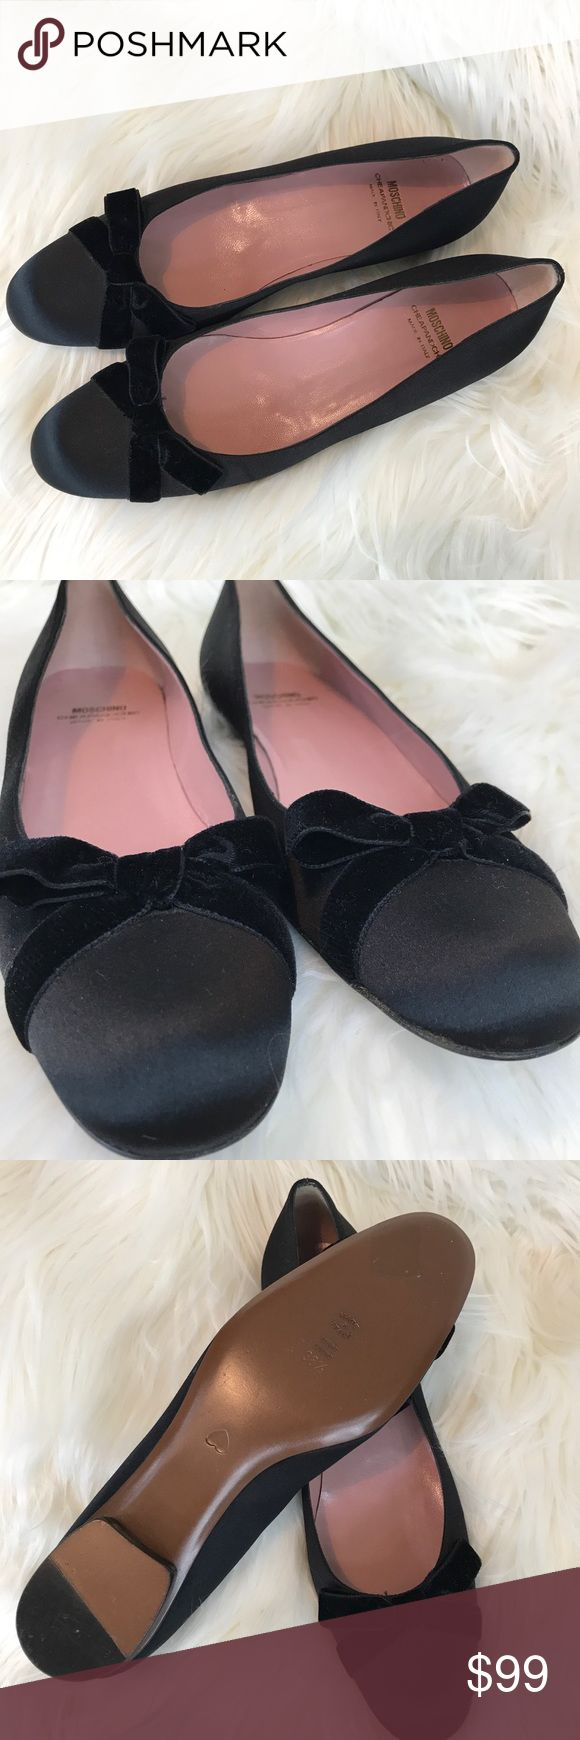 Moschino Cheap & Chic Ballet Flats new Adorable and in new condition. They appear to be tried on but that is about it. Lamb leather lined satin with velvet ribbon bow and a stacked wooden heel. All leather sole and insole. Marked 38 1/2 but fit is more like 8 Narrow. Moschino Shoes Flats & Loafers